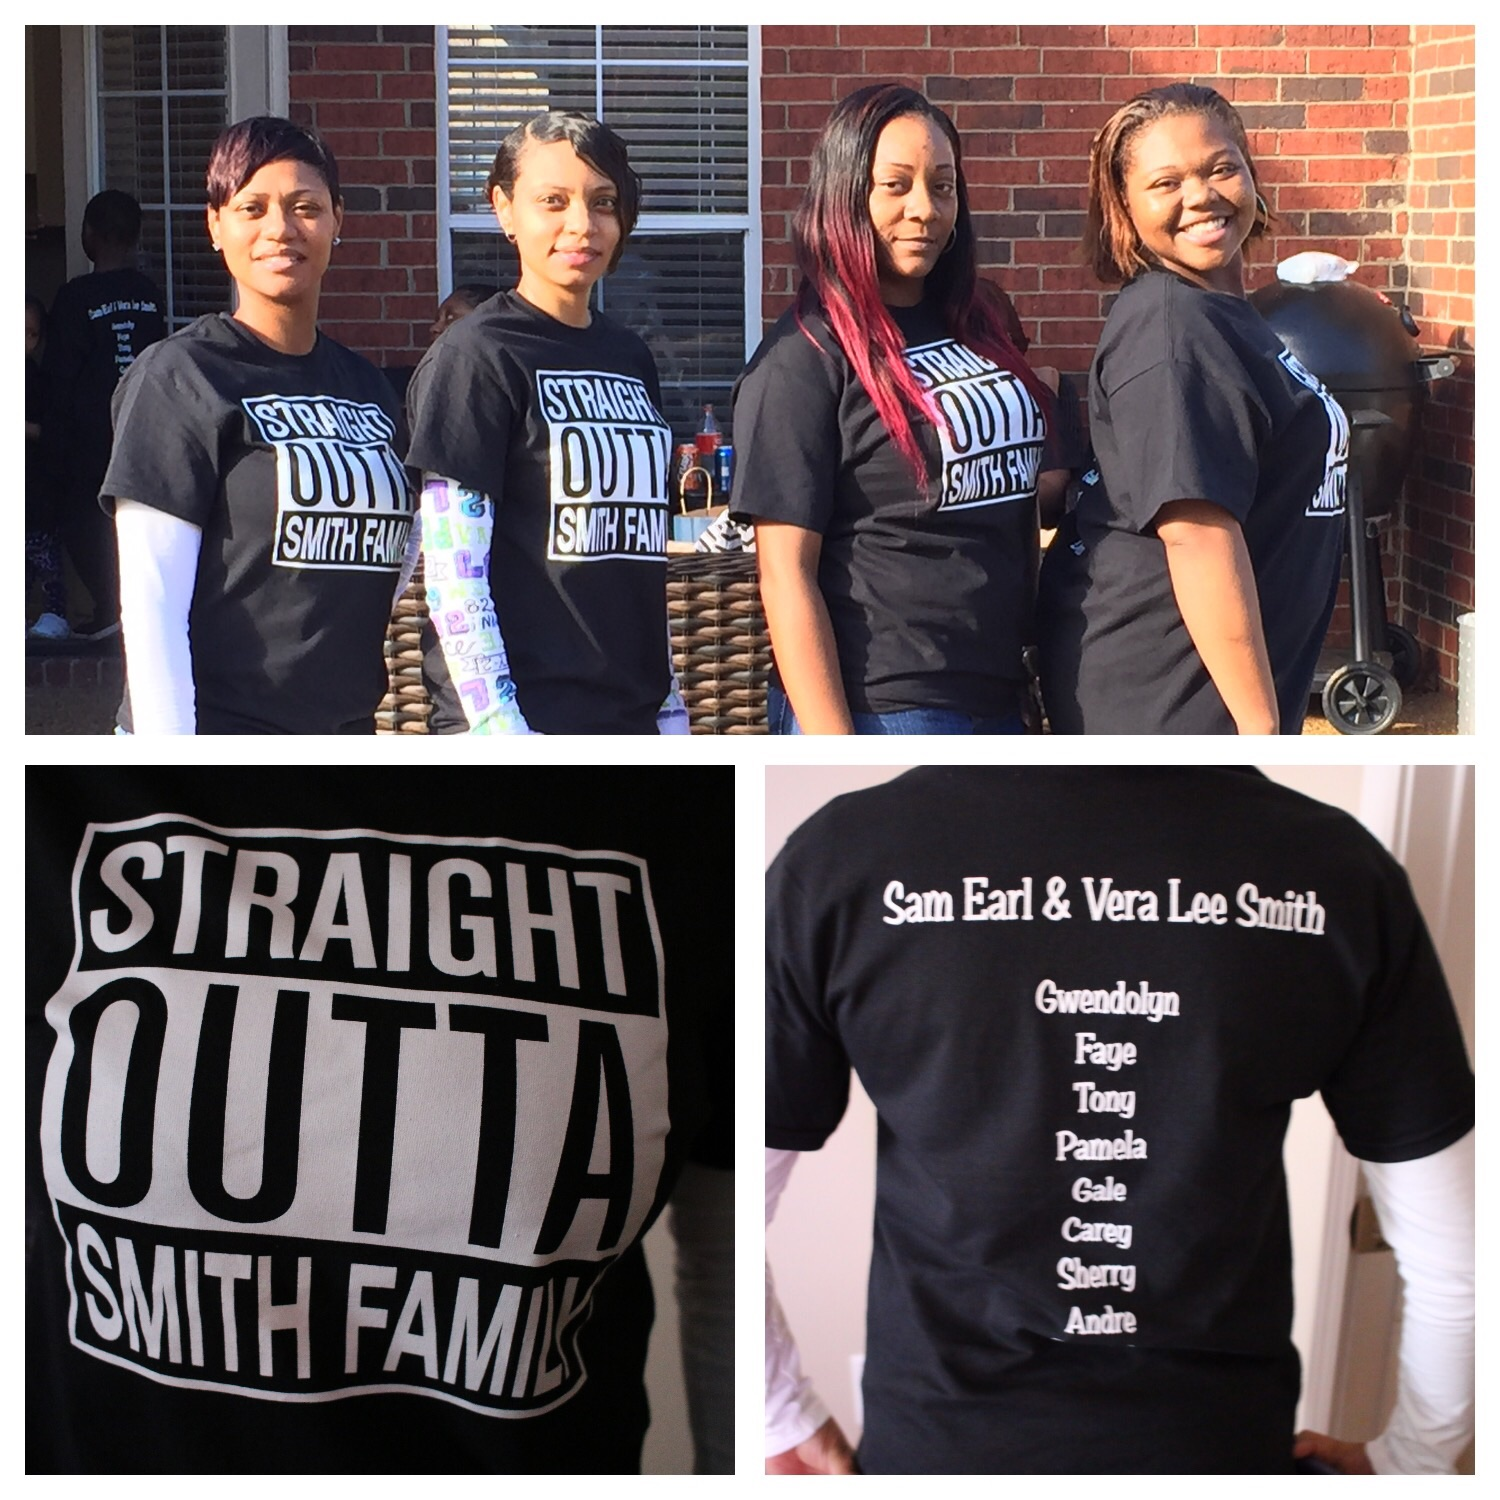 Custom T Shirts For Straight Outta Smith Family Shirt Design Ideas